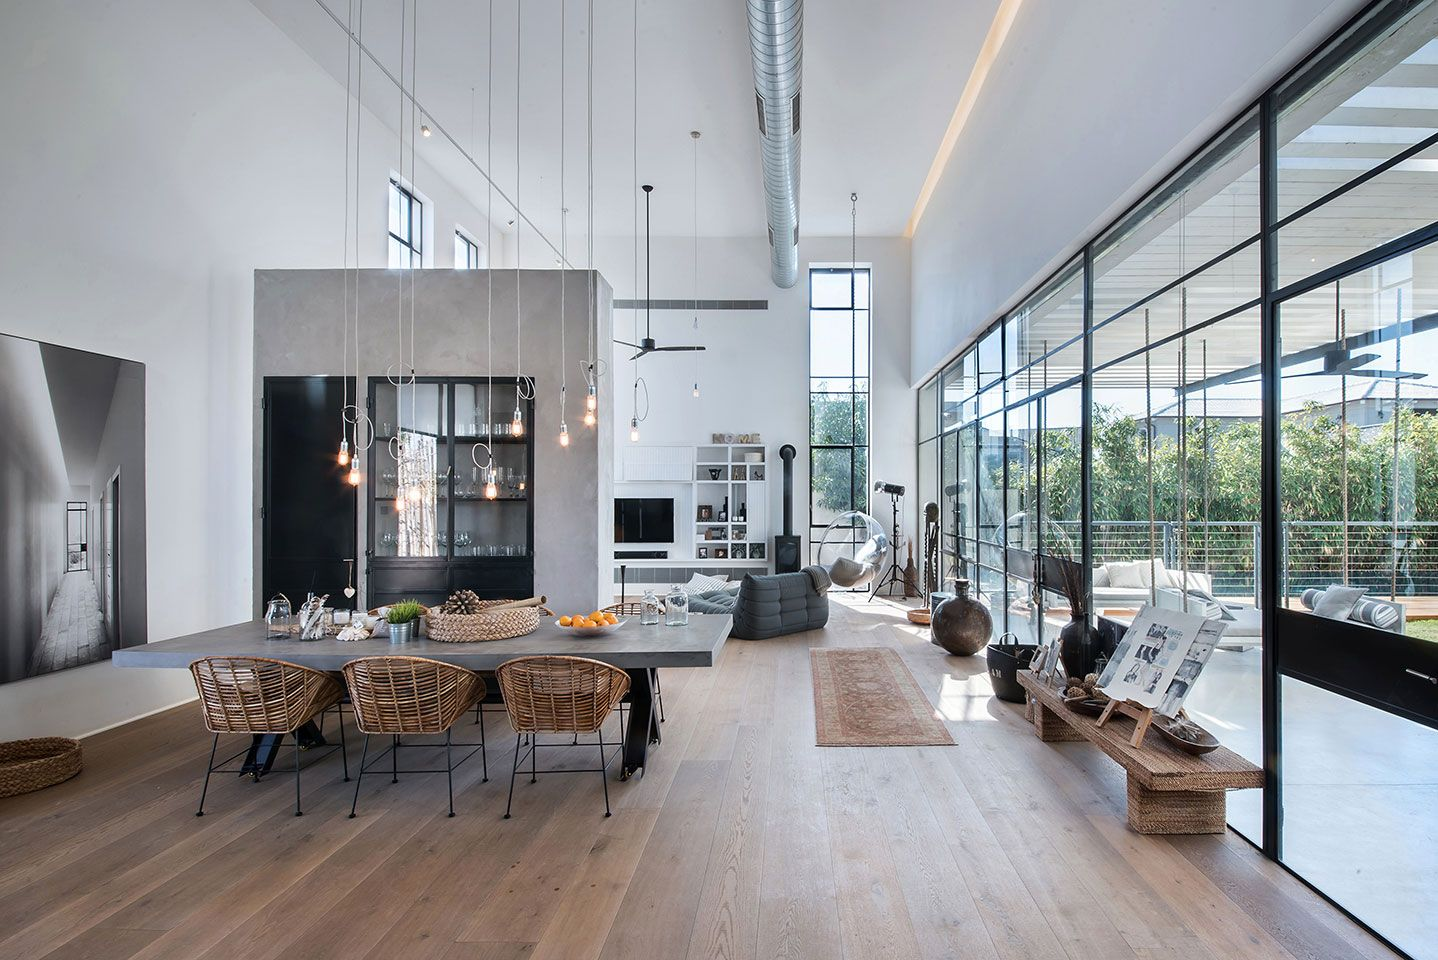 Wohnzimmer des modernen interieurs des hauses sweet home  outdoor  pinterest  tel aviv architects and interiors